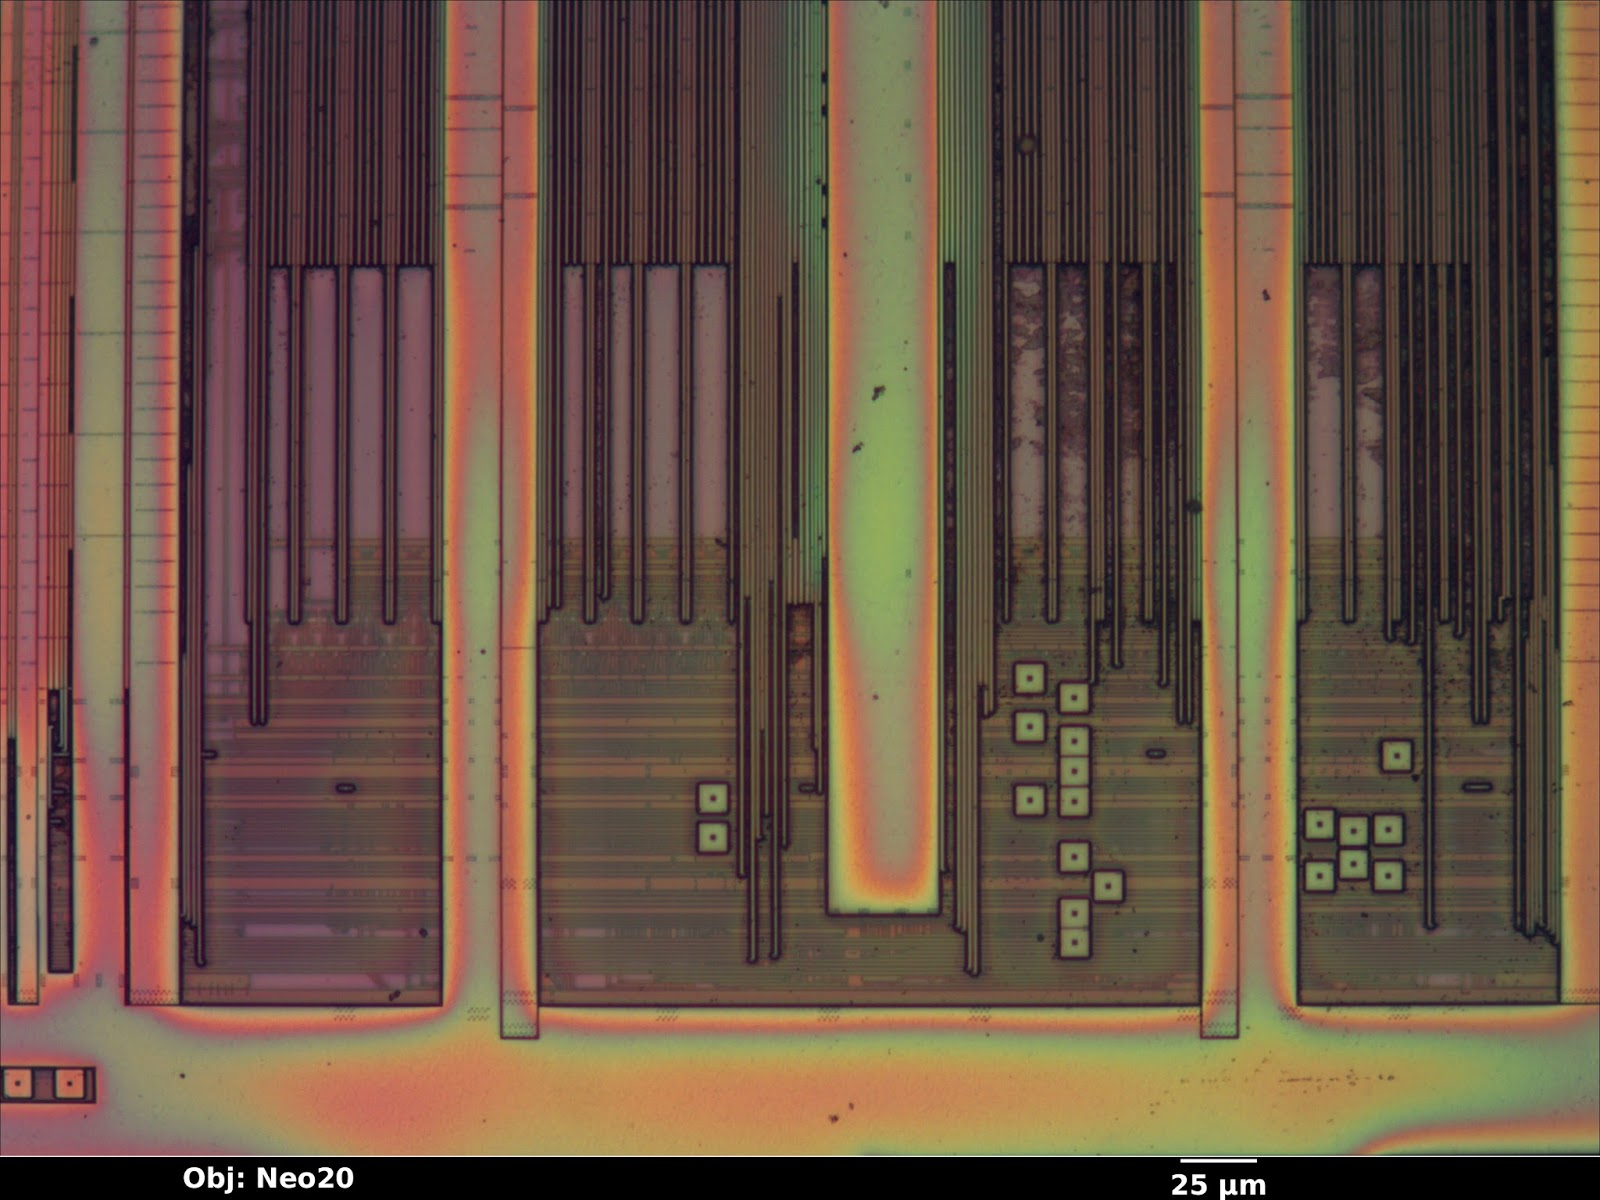 Inside The Ioactive Silicon Lab Interpreting Images Color Lights Organ Circuit Using Cmos Ics Thickness Of Top Passivation Layer Varies Significantly Across Die Surface Resulting In Rainbow Colored Fringes